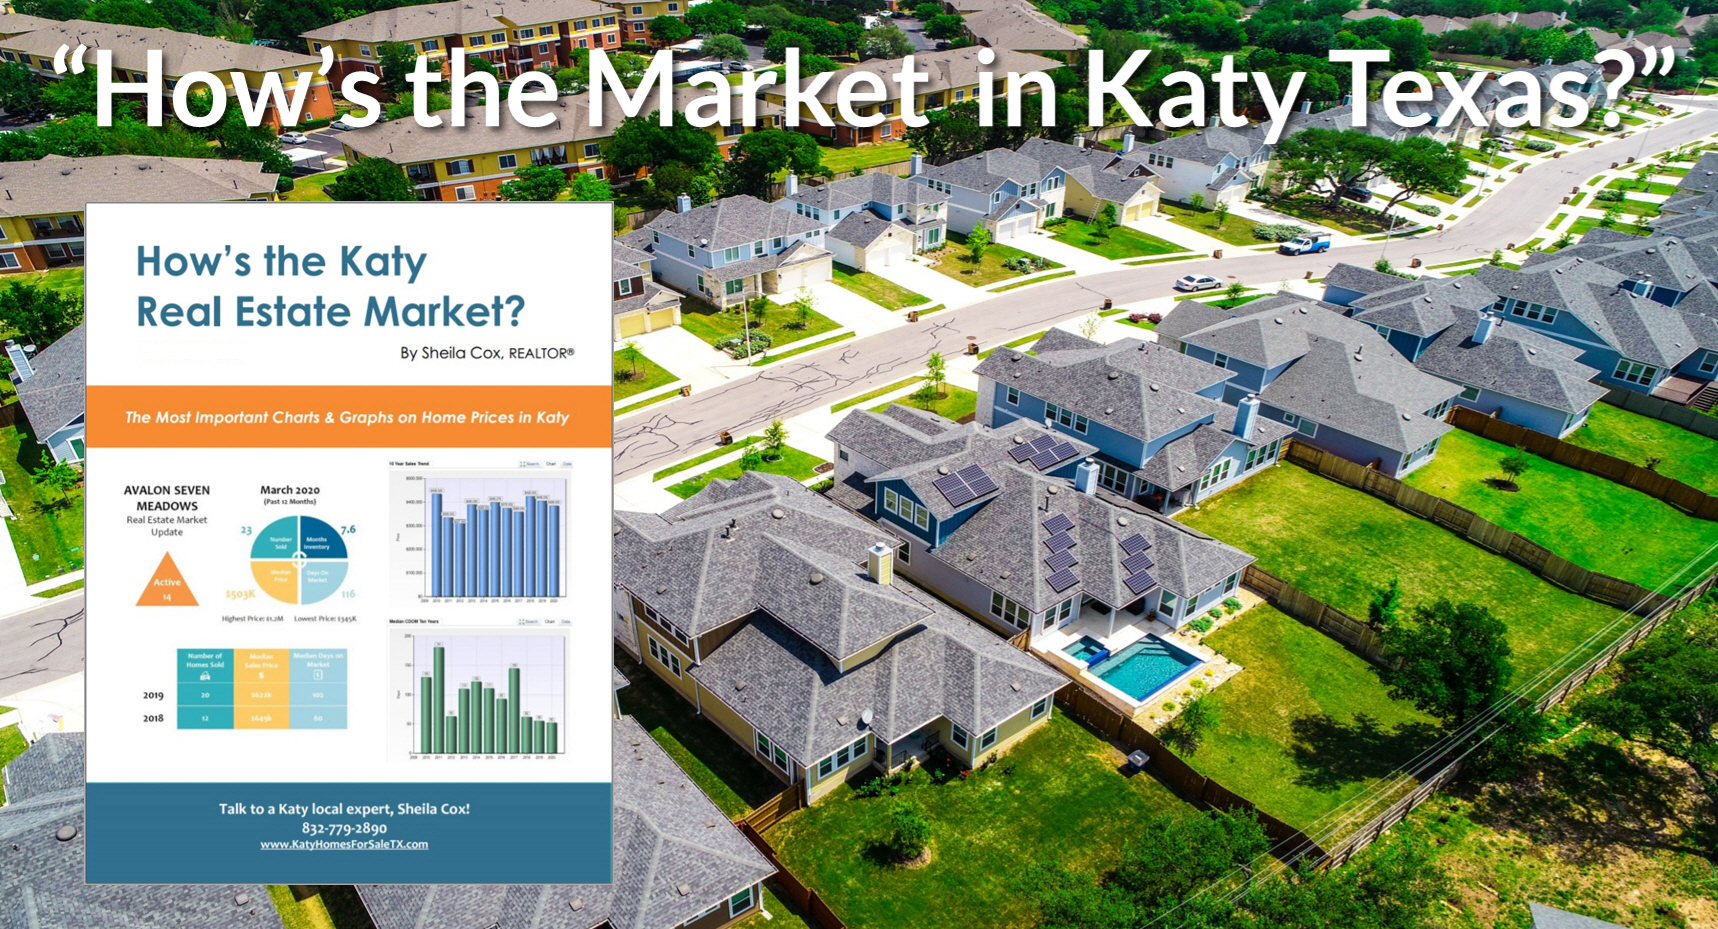 katy-real-estate-market